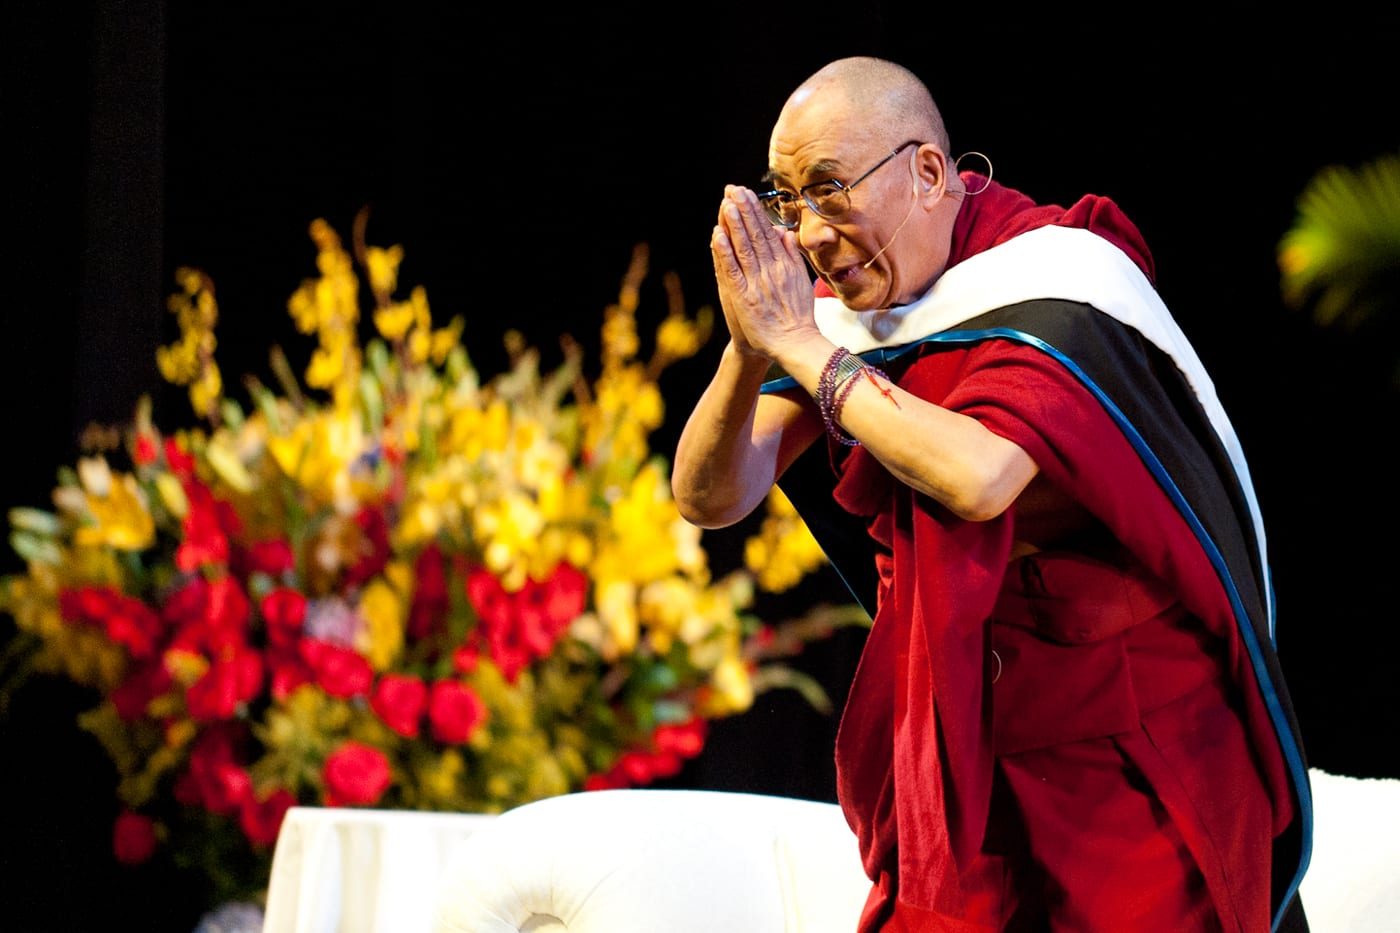 The 14th Dalai Lama at SMU, May 9, 2011